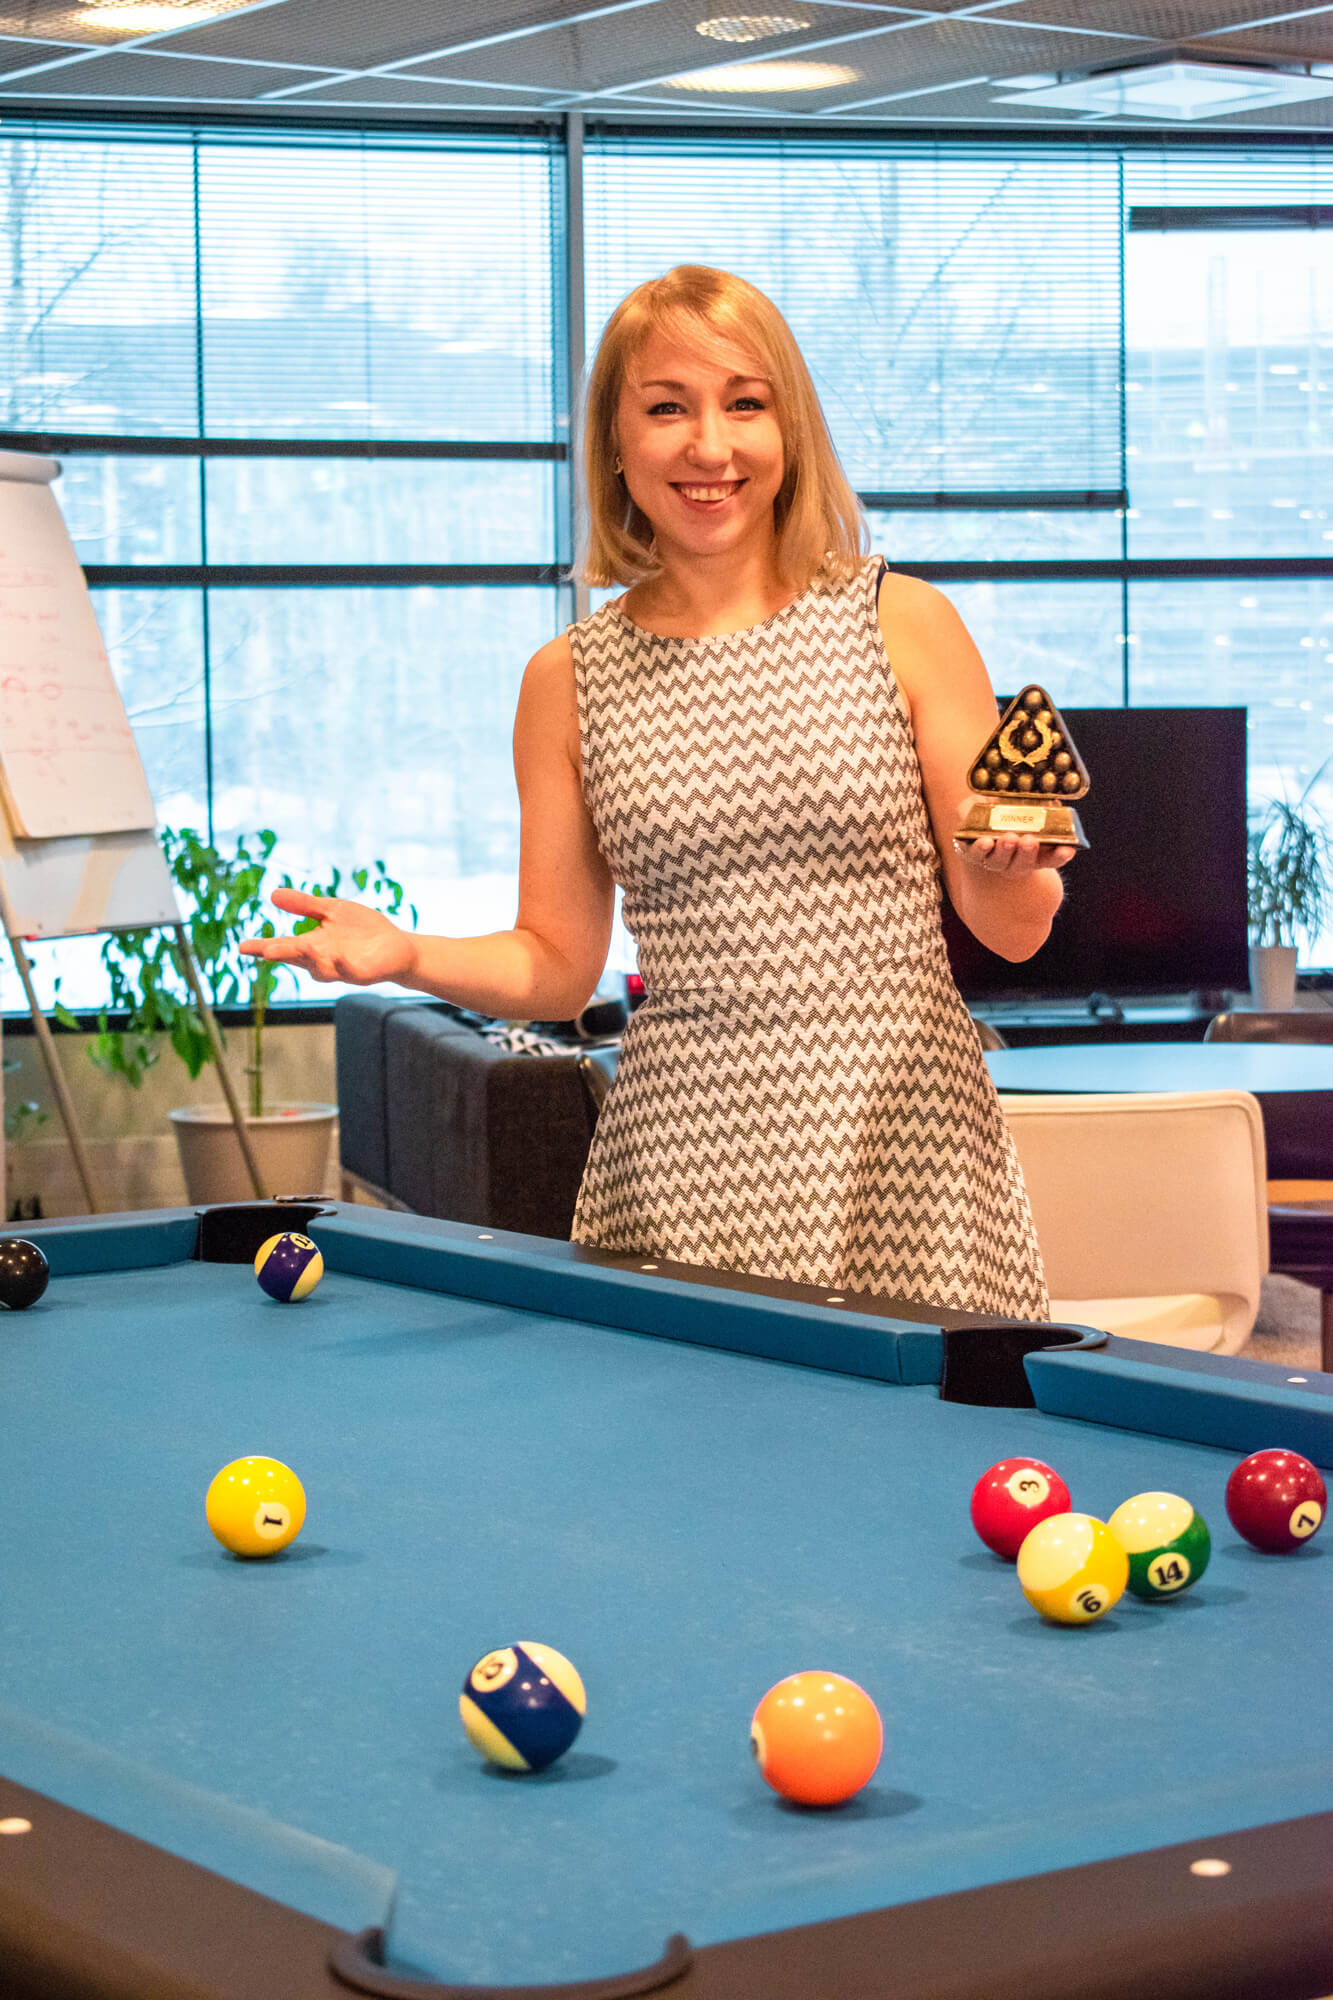 Administrative Coordinator Valeria showing her pool victory prize